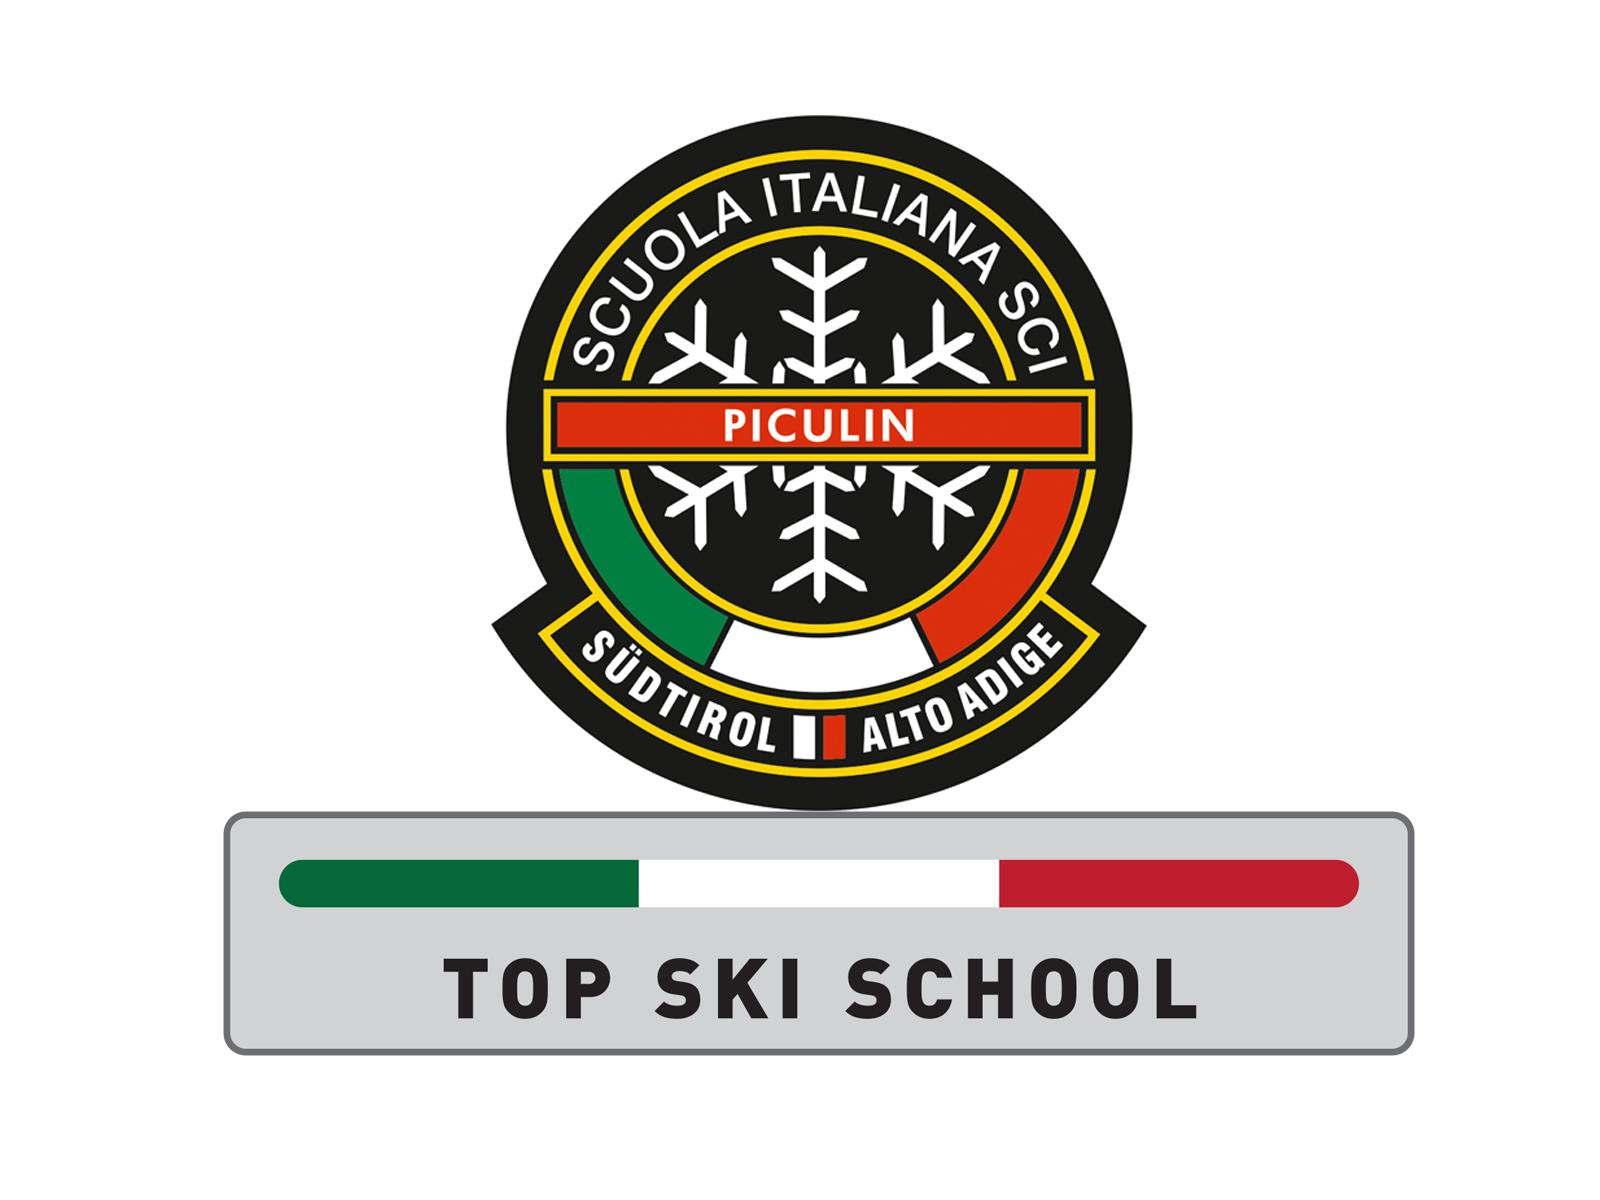 Ski school Top Ski Piculin